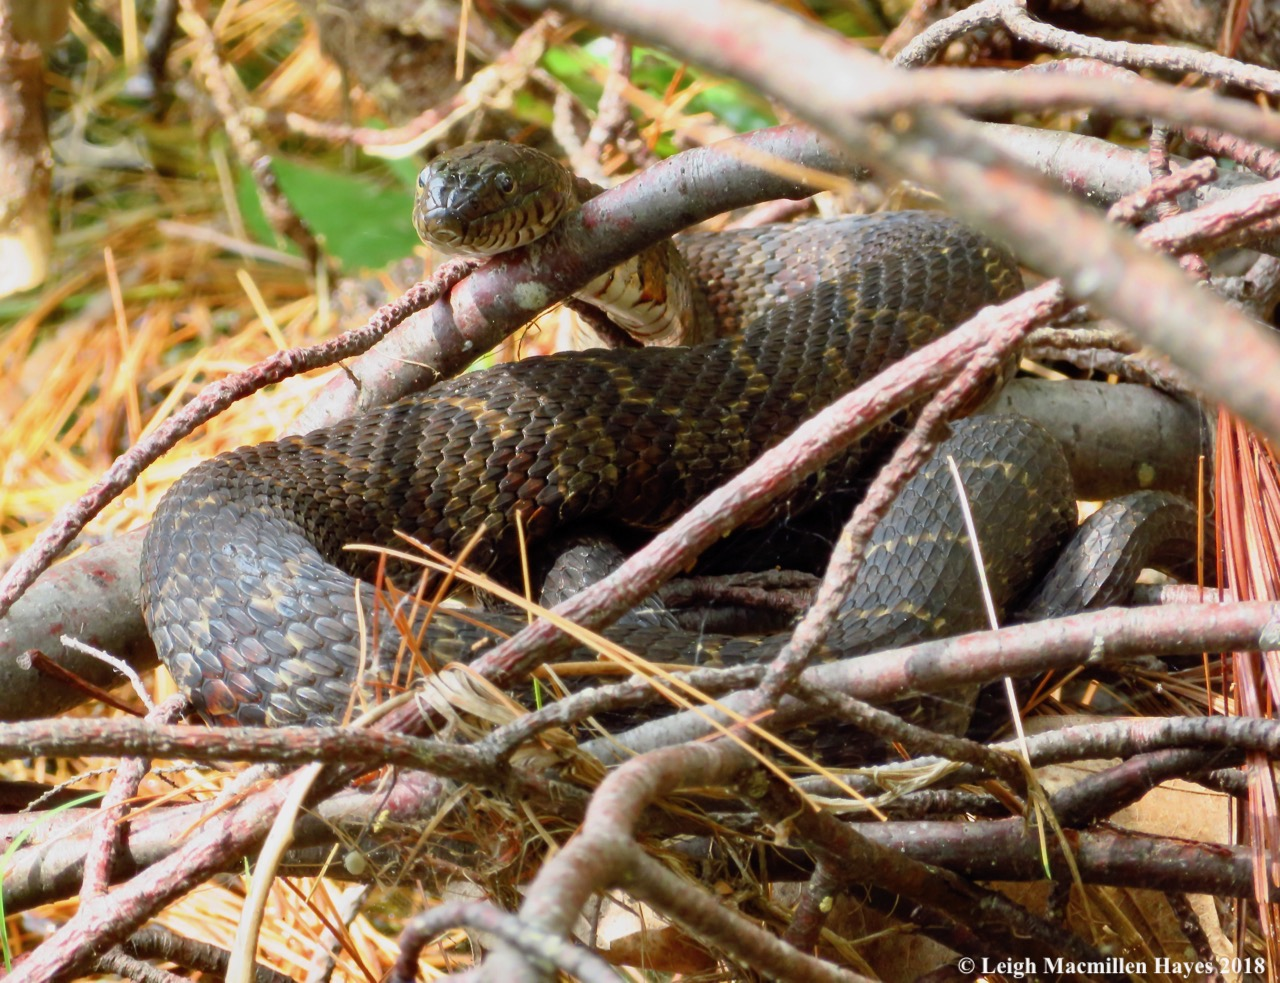 Water snake at the GLLT Otter Rock